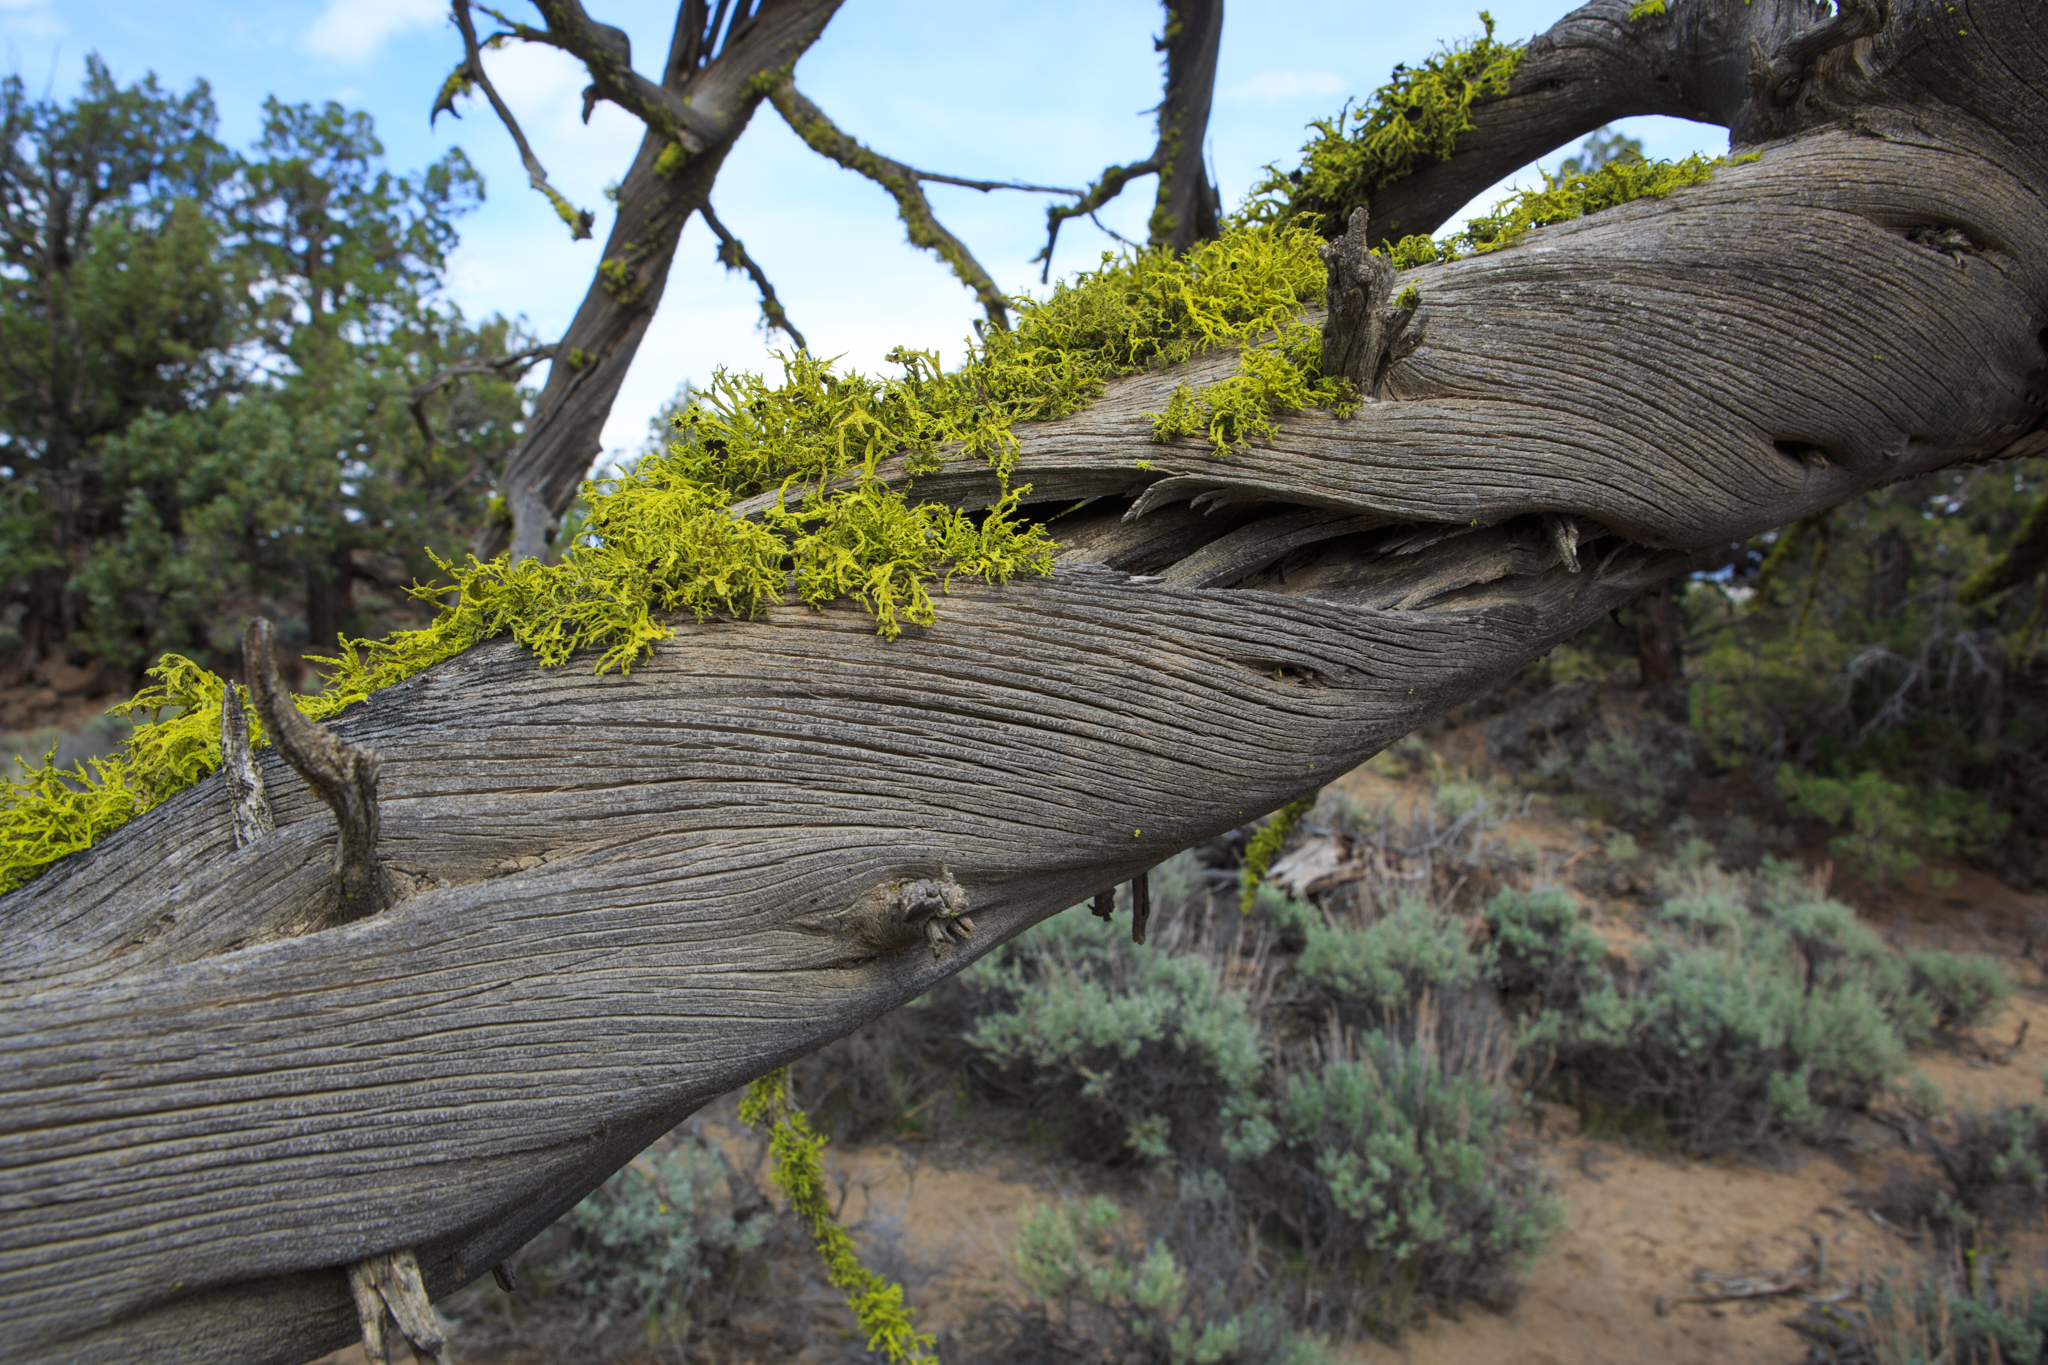 The twisted and gnarled branches of old junipers are often covered in bright green lichen.